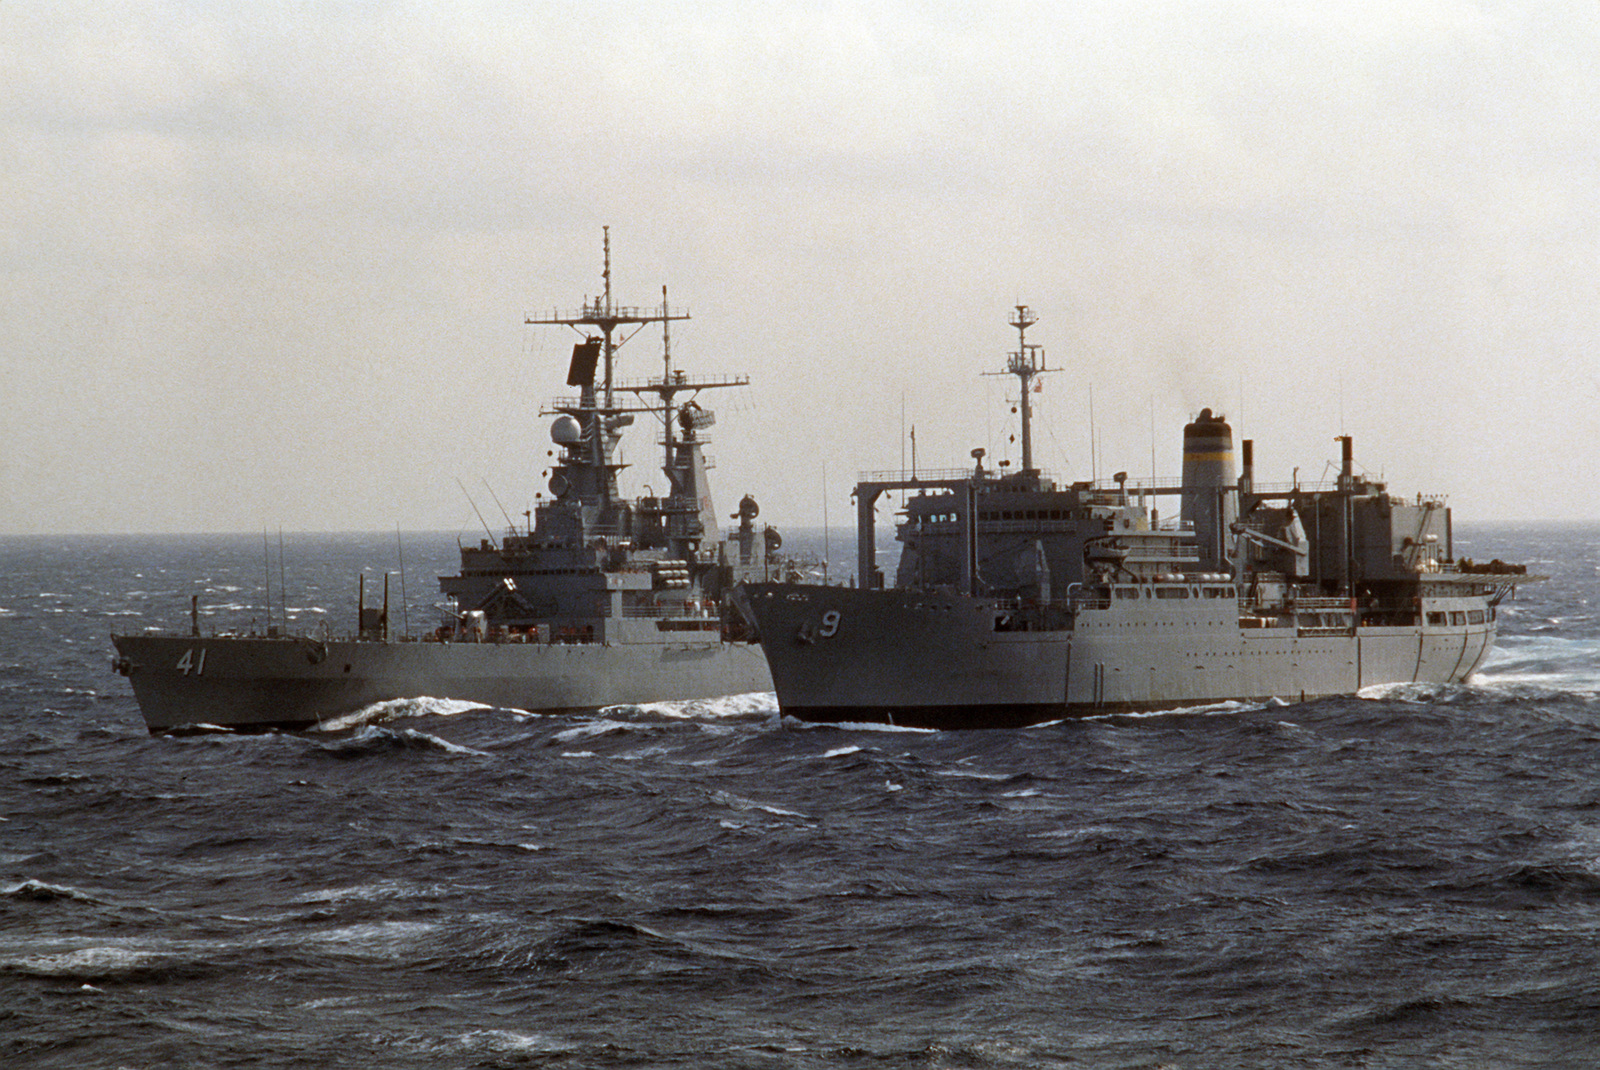 A port bow view of the combat stores ship USNS SPICA (T-AFS 9), right, and the nuclear-powered guided missile cruiser USS ARKANSAS (CGN 41) during an underway replenishment operation